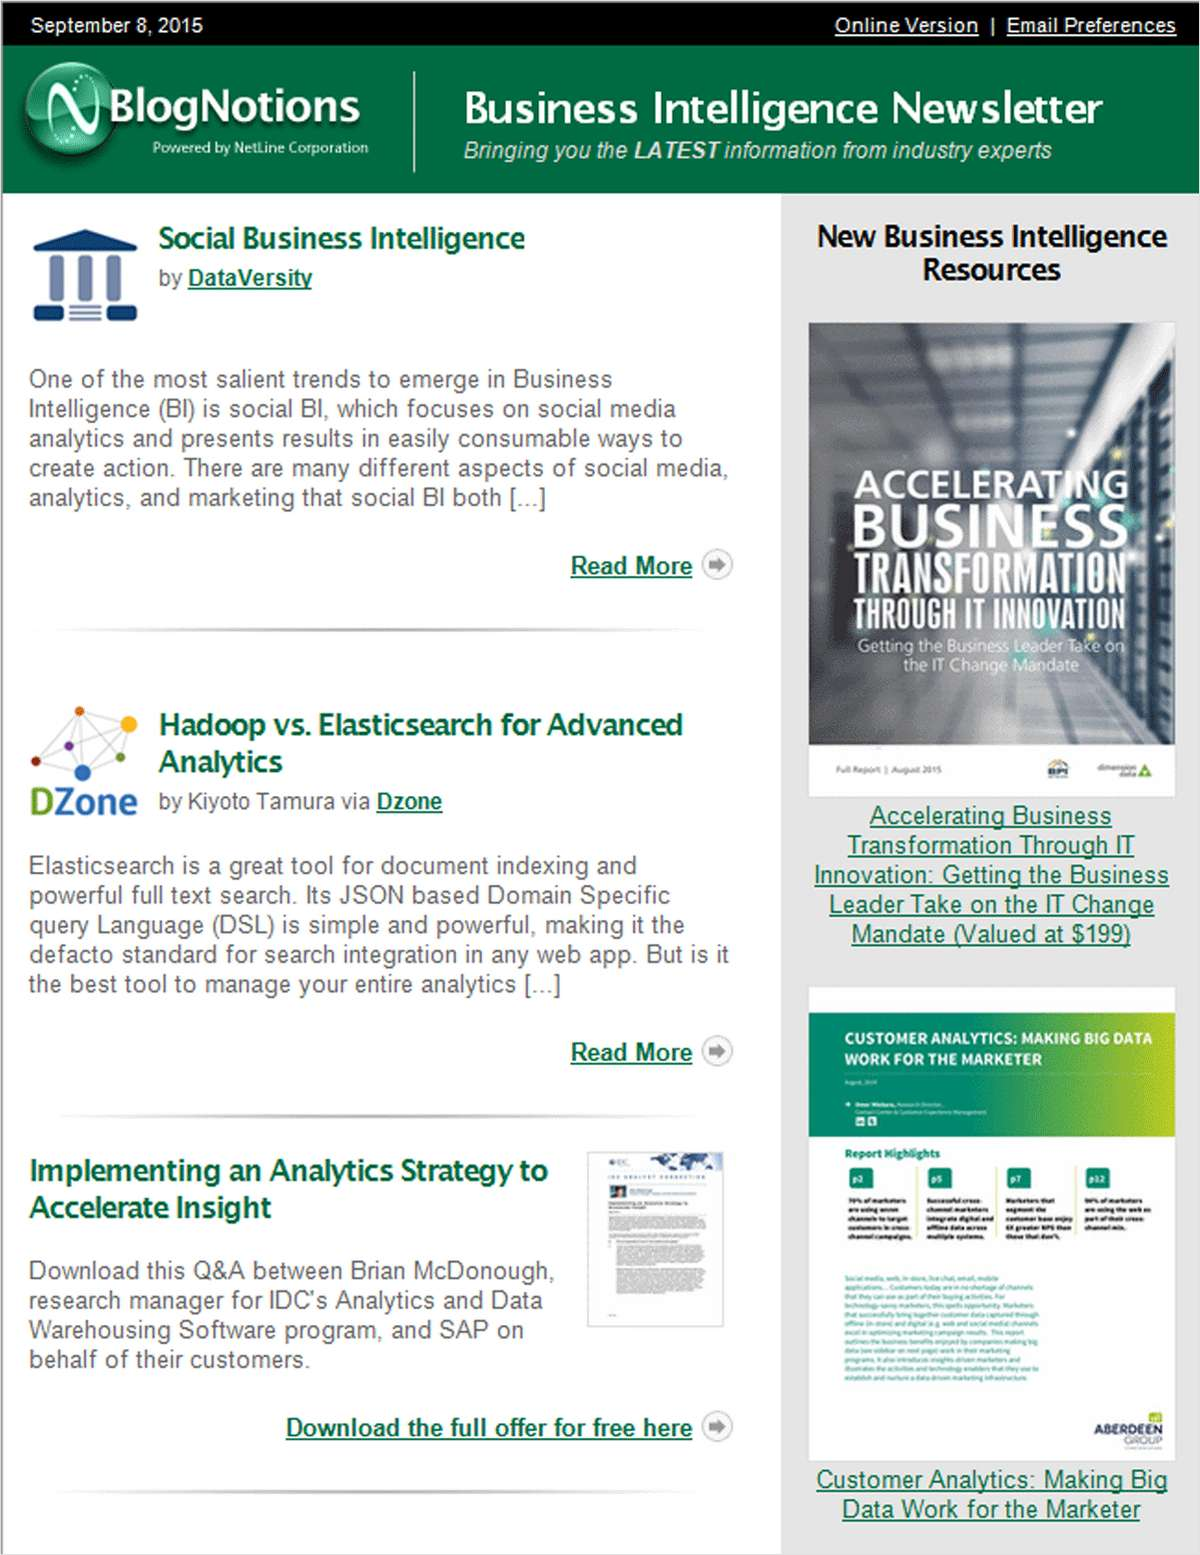 BlogNotions Business Intelligence Newsletter: Monthly eNewsletter Featuring Blogs from Industry Experts